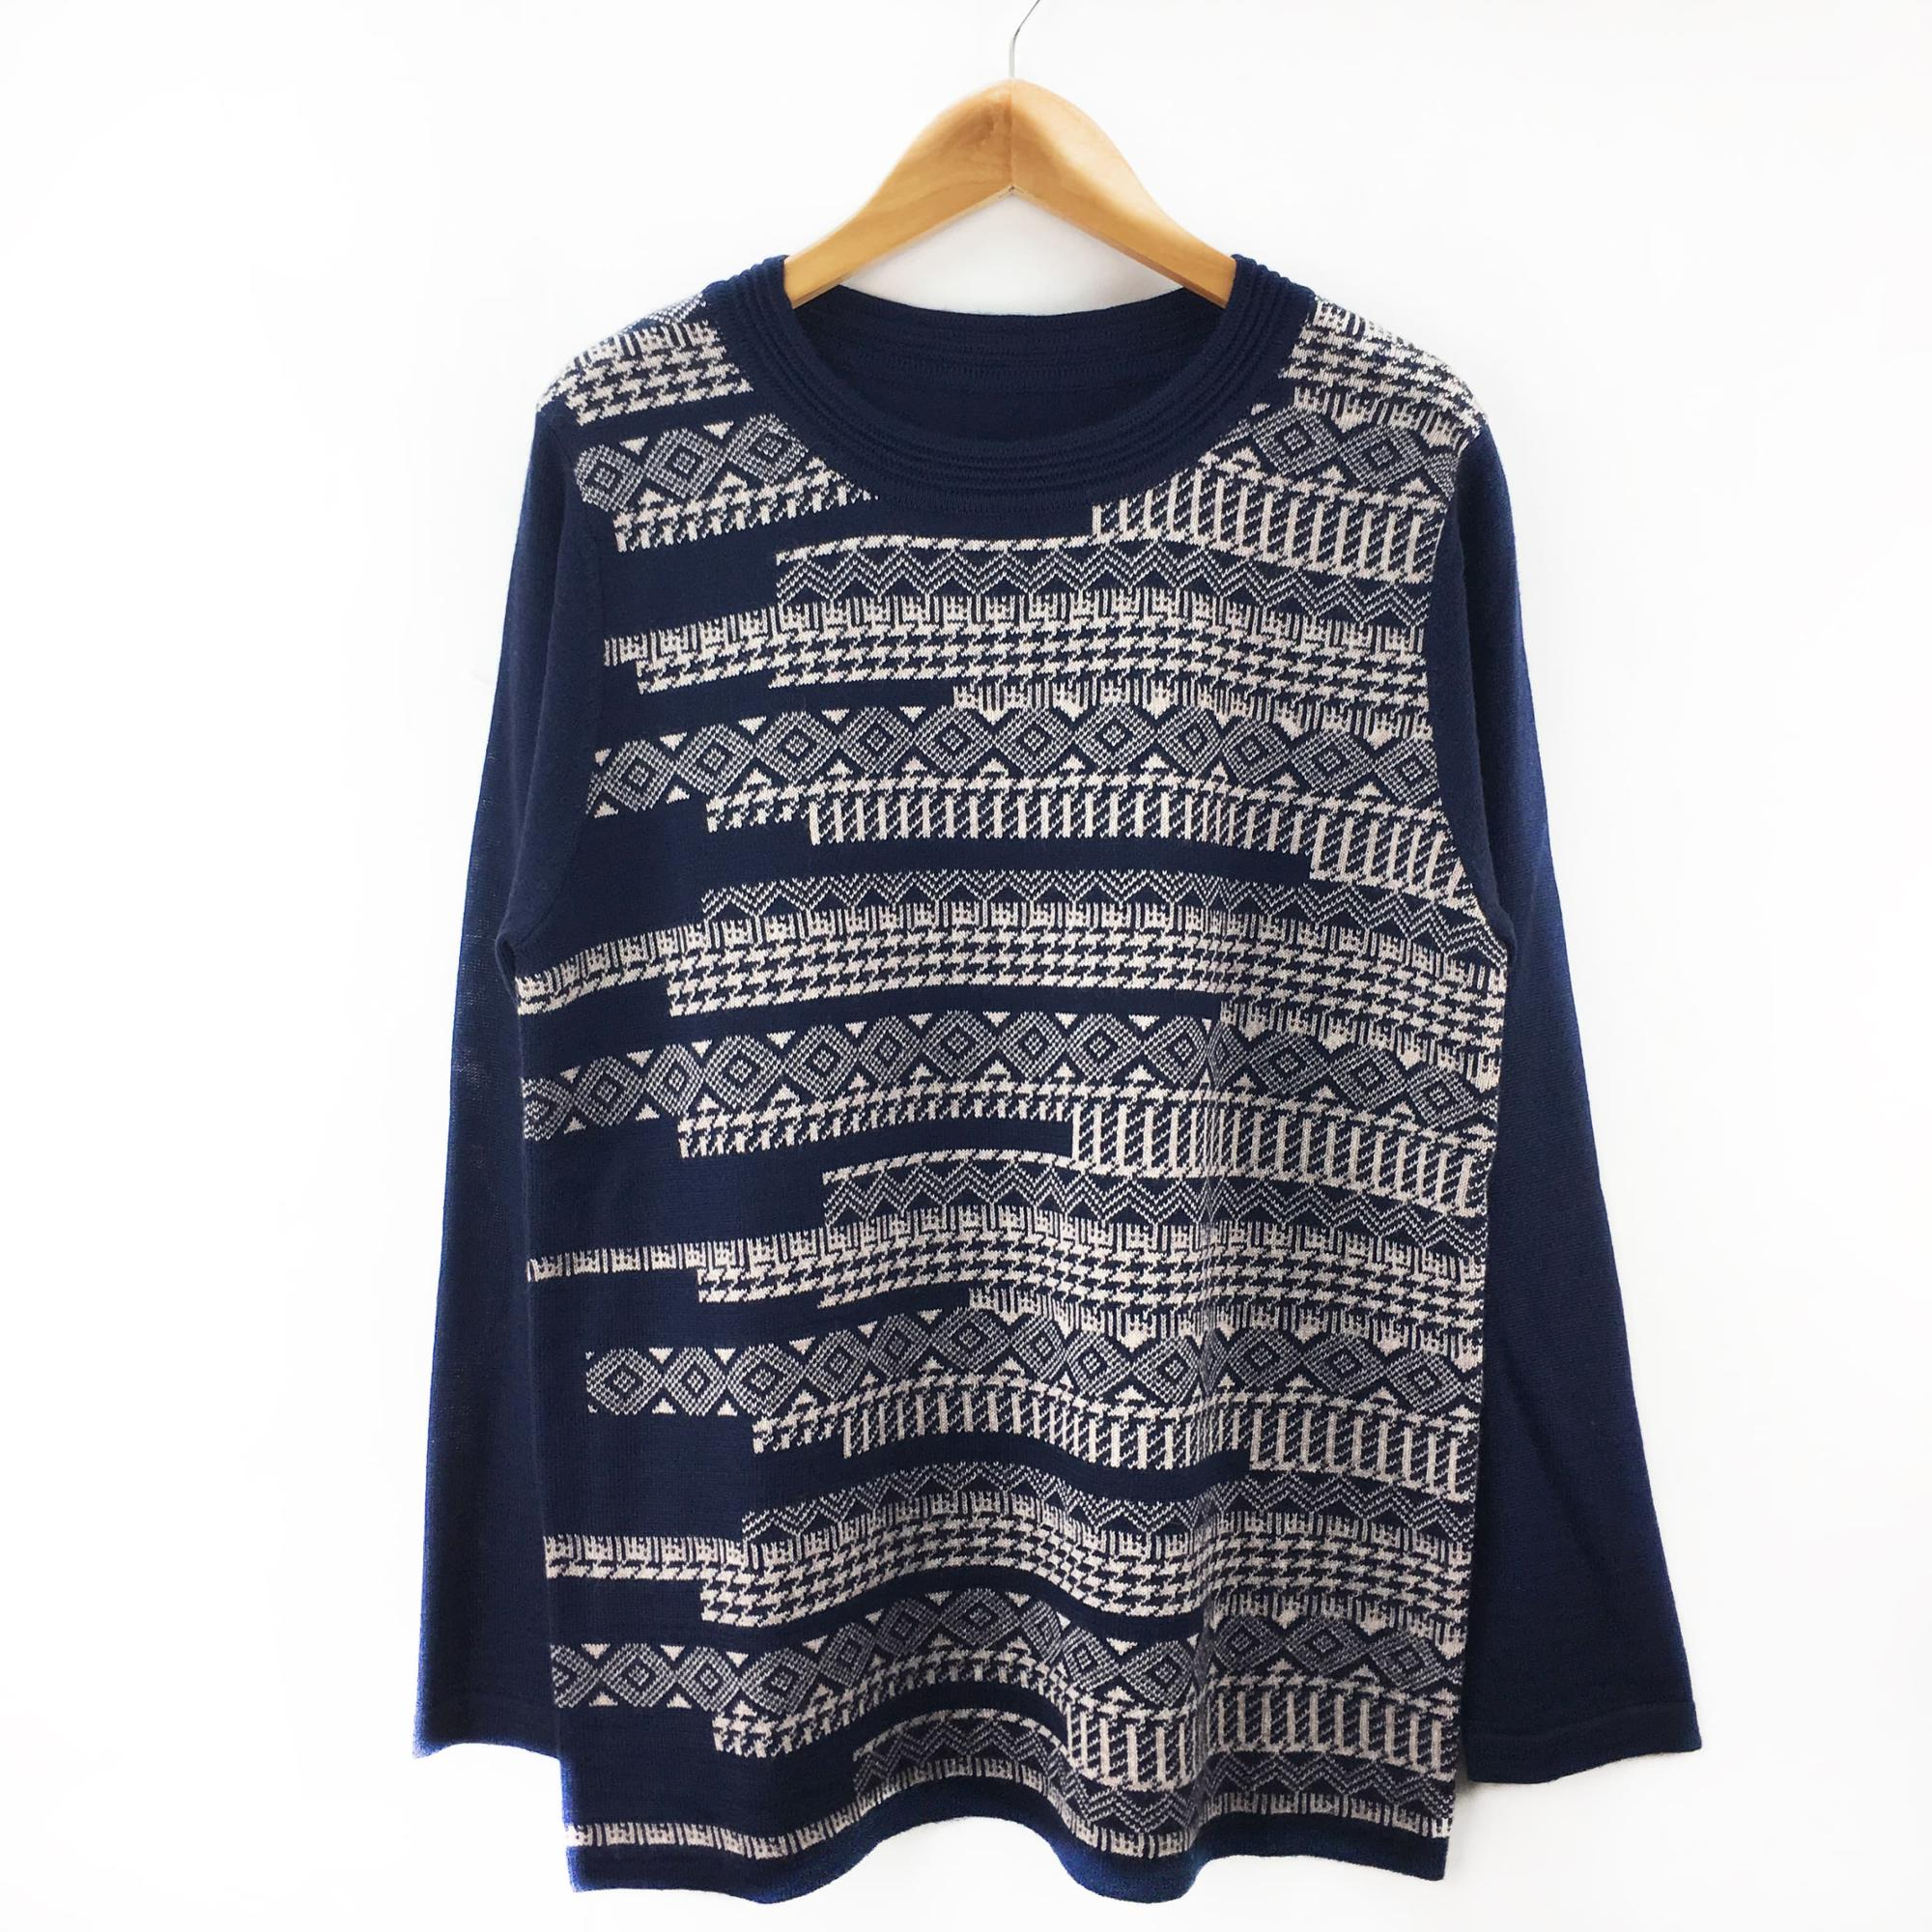 Women's round neck white and blue striped knitting pullover sweater